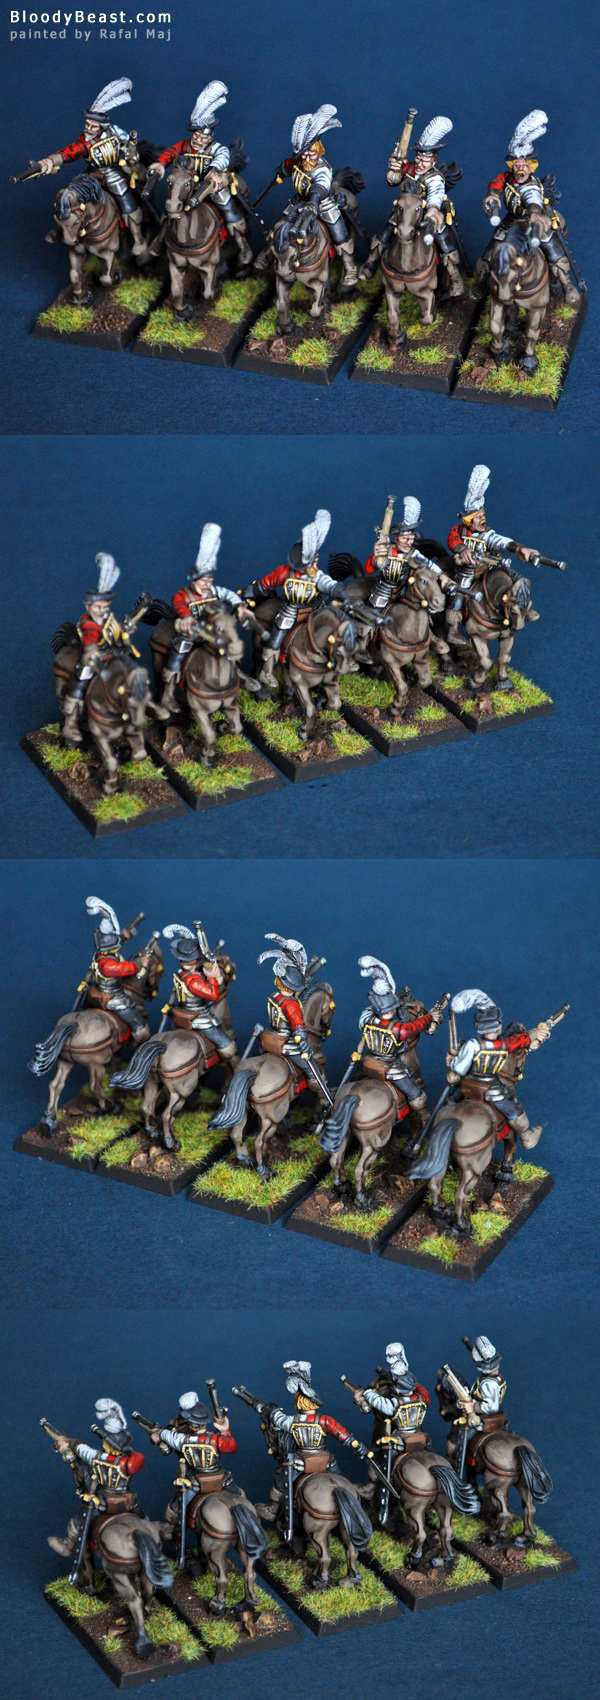 Empire Pistoliers painted by Rafal Maj (BloodyBeast.com)